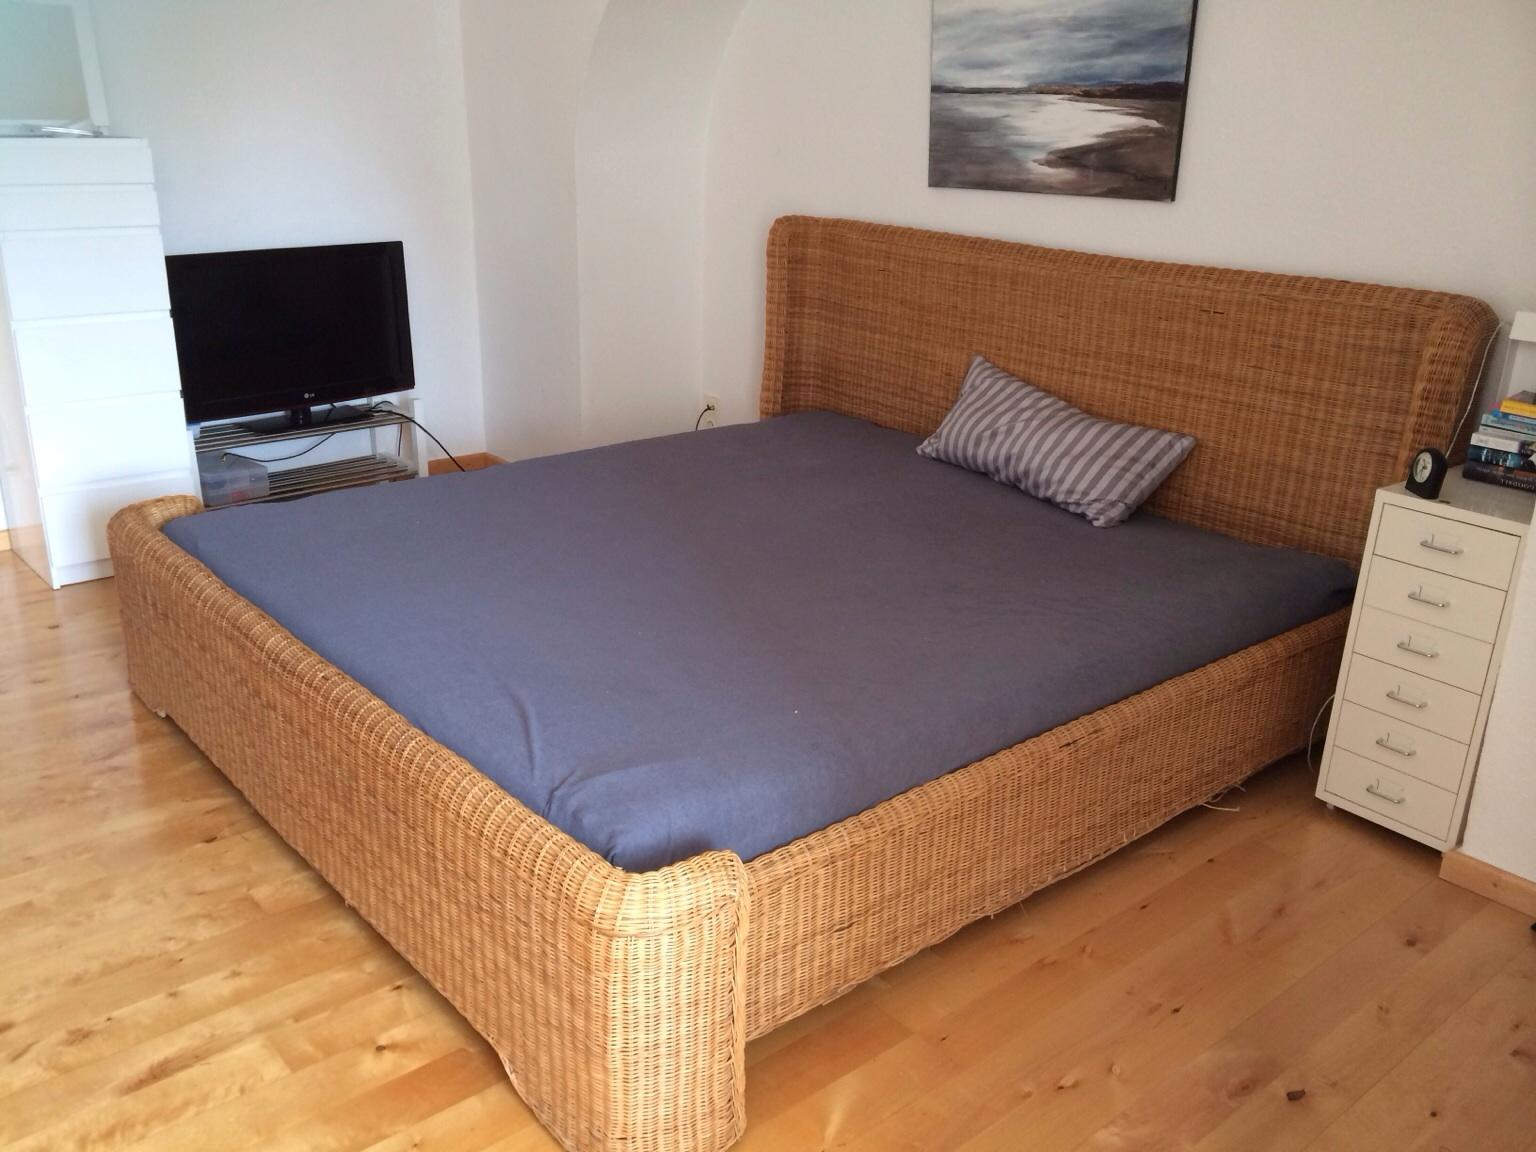 Ikea Rattanbett In 82041 Oberhaching For Free For Sale